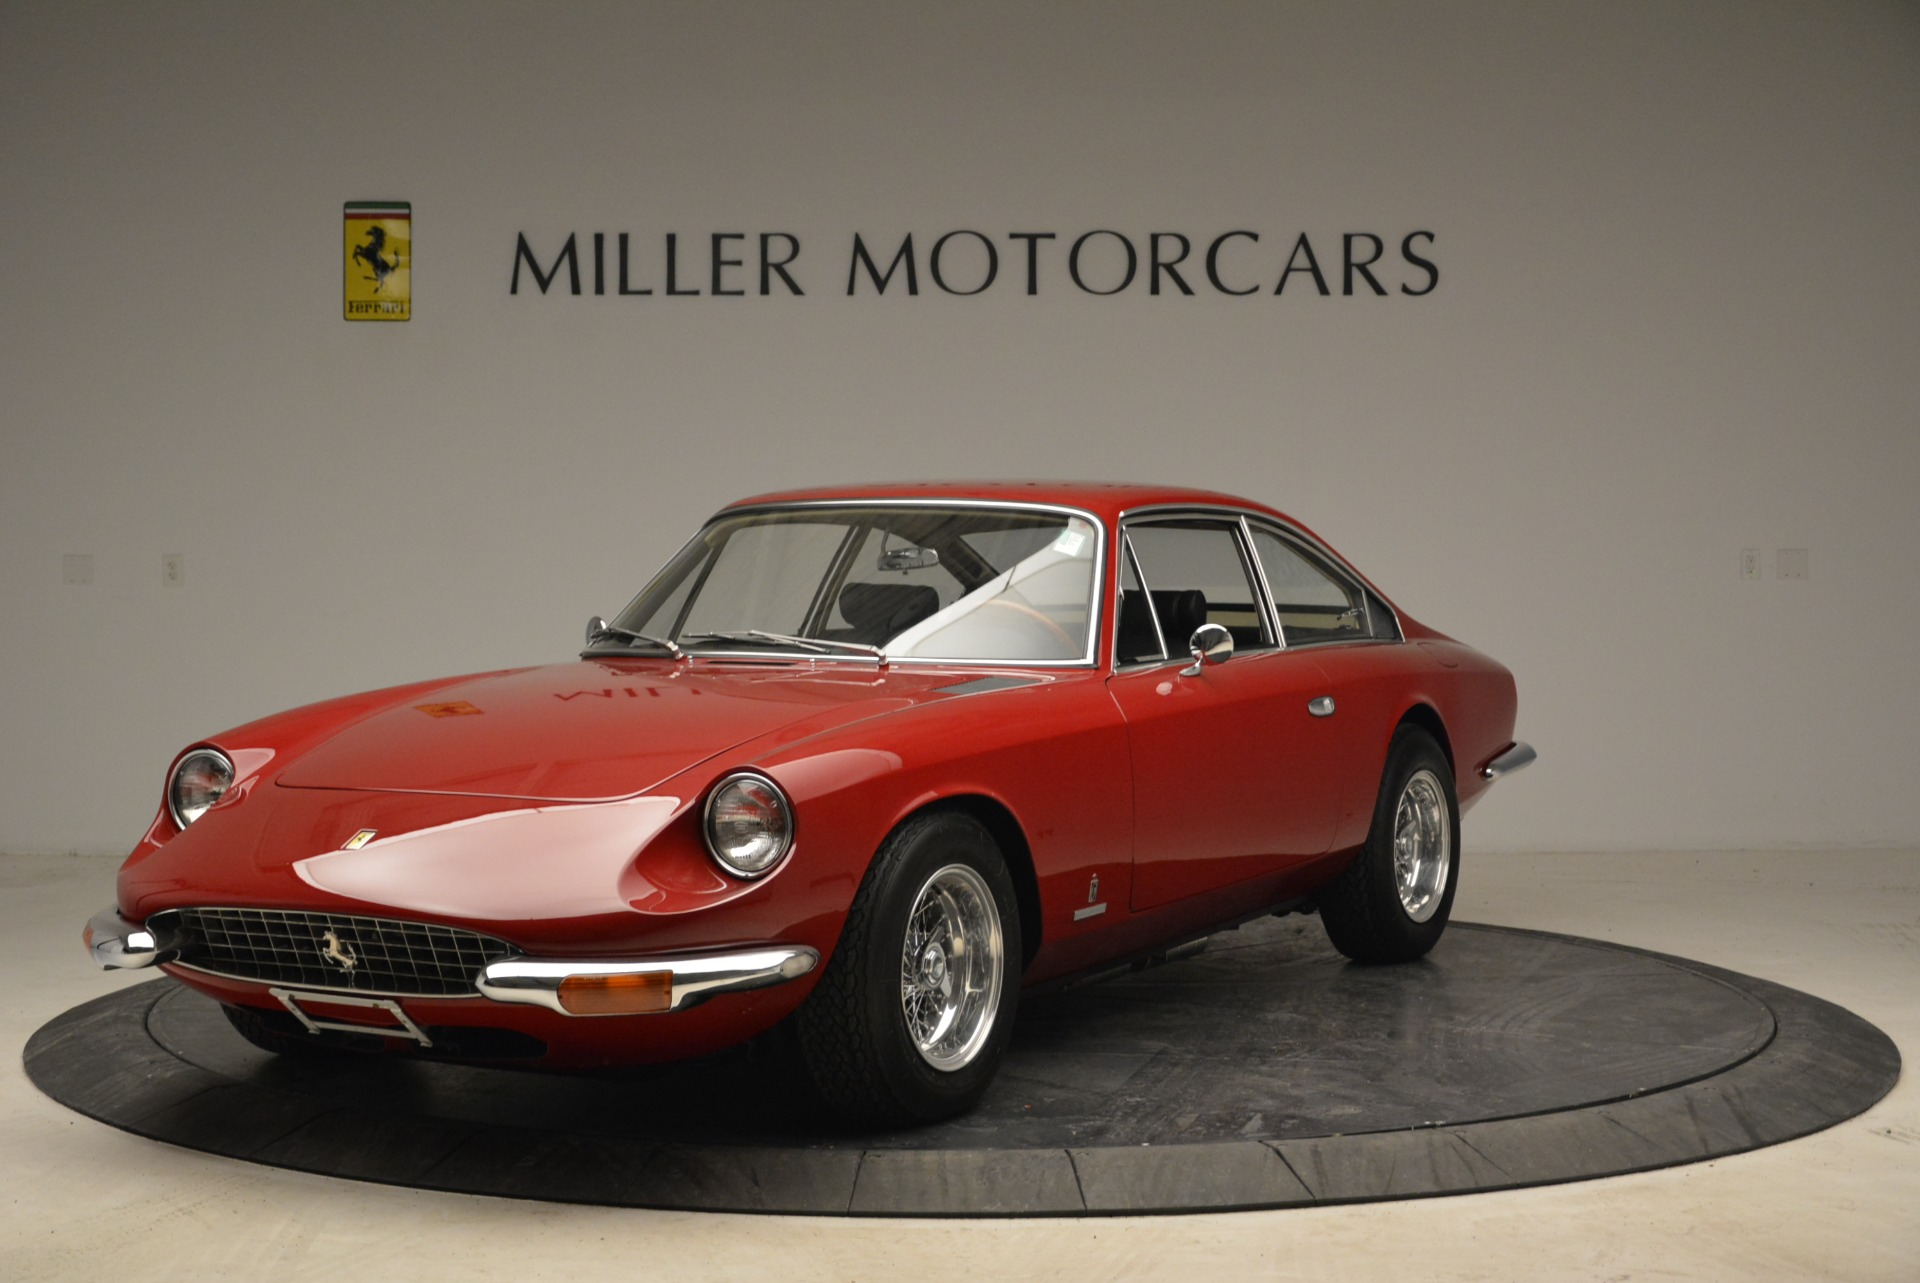 Used 1969 Ferrari 365 GT 2+2 for sale Sold at Pagani of Greenwich in Greenwich CT 06830 1